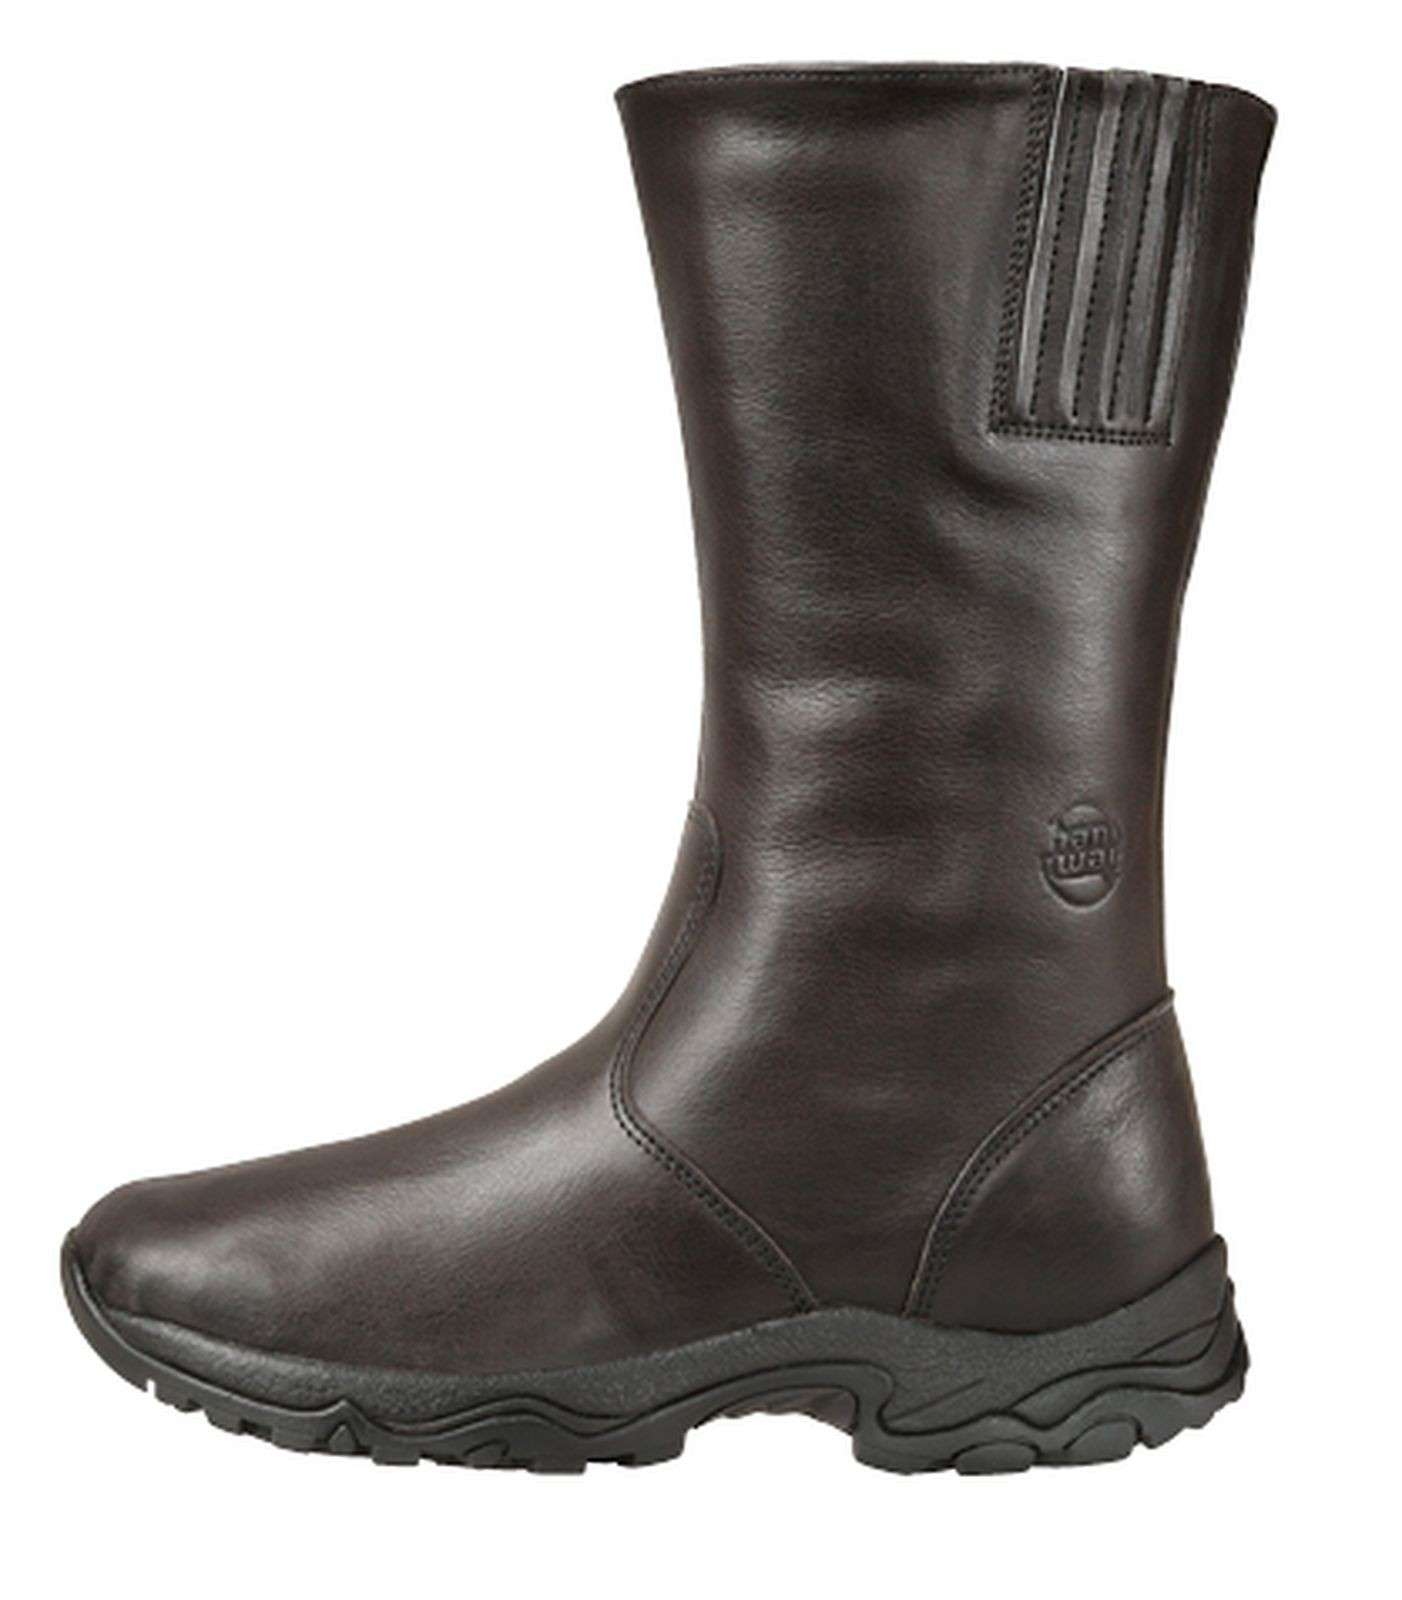 HANWAG Winterstiefel Tannäs Classic Lady Leder Gr.6,5 graphite